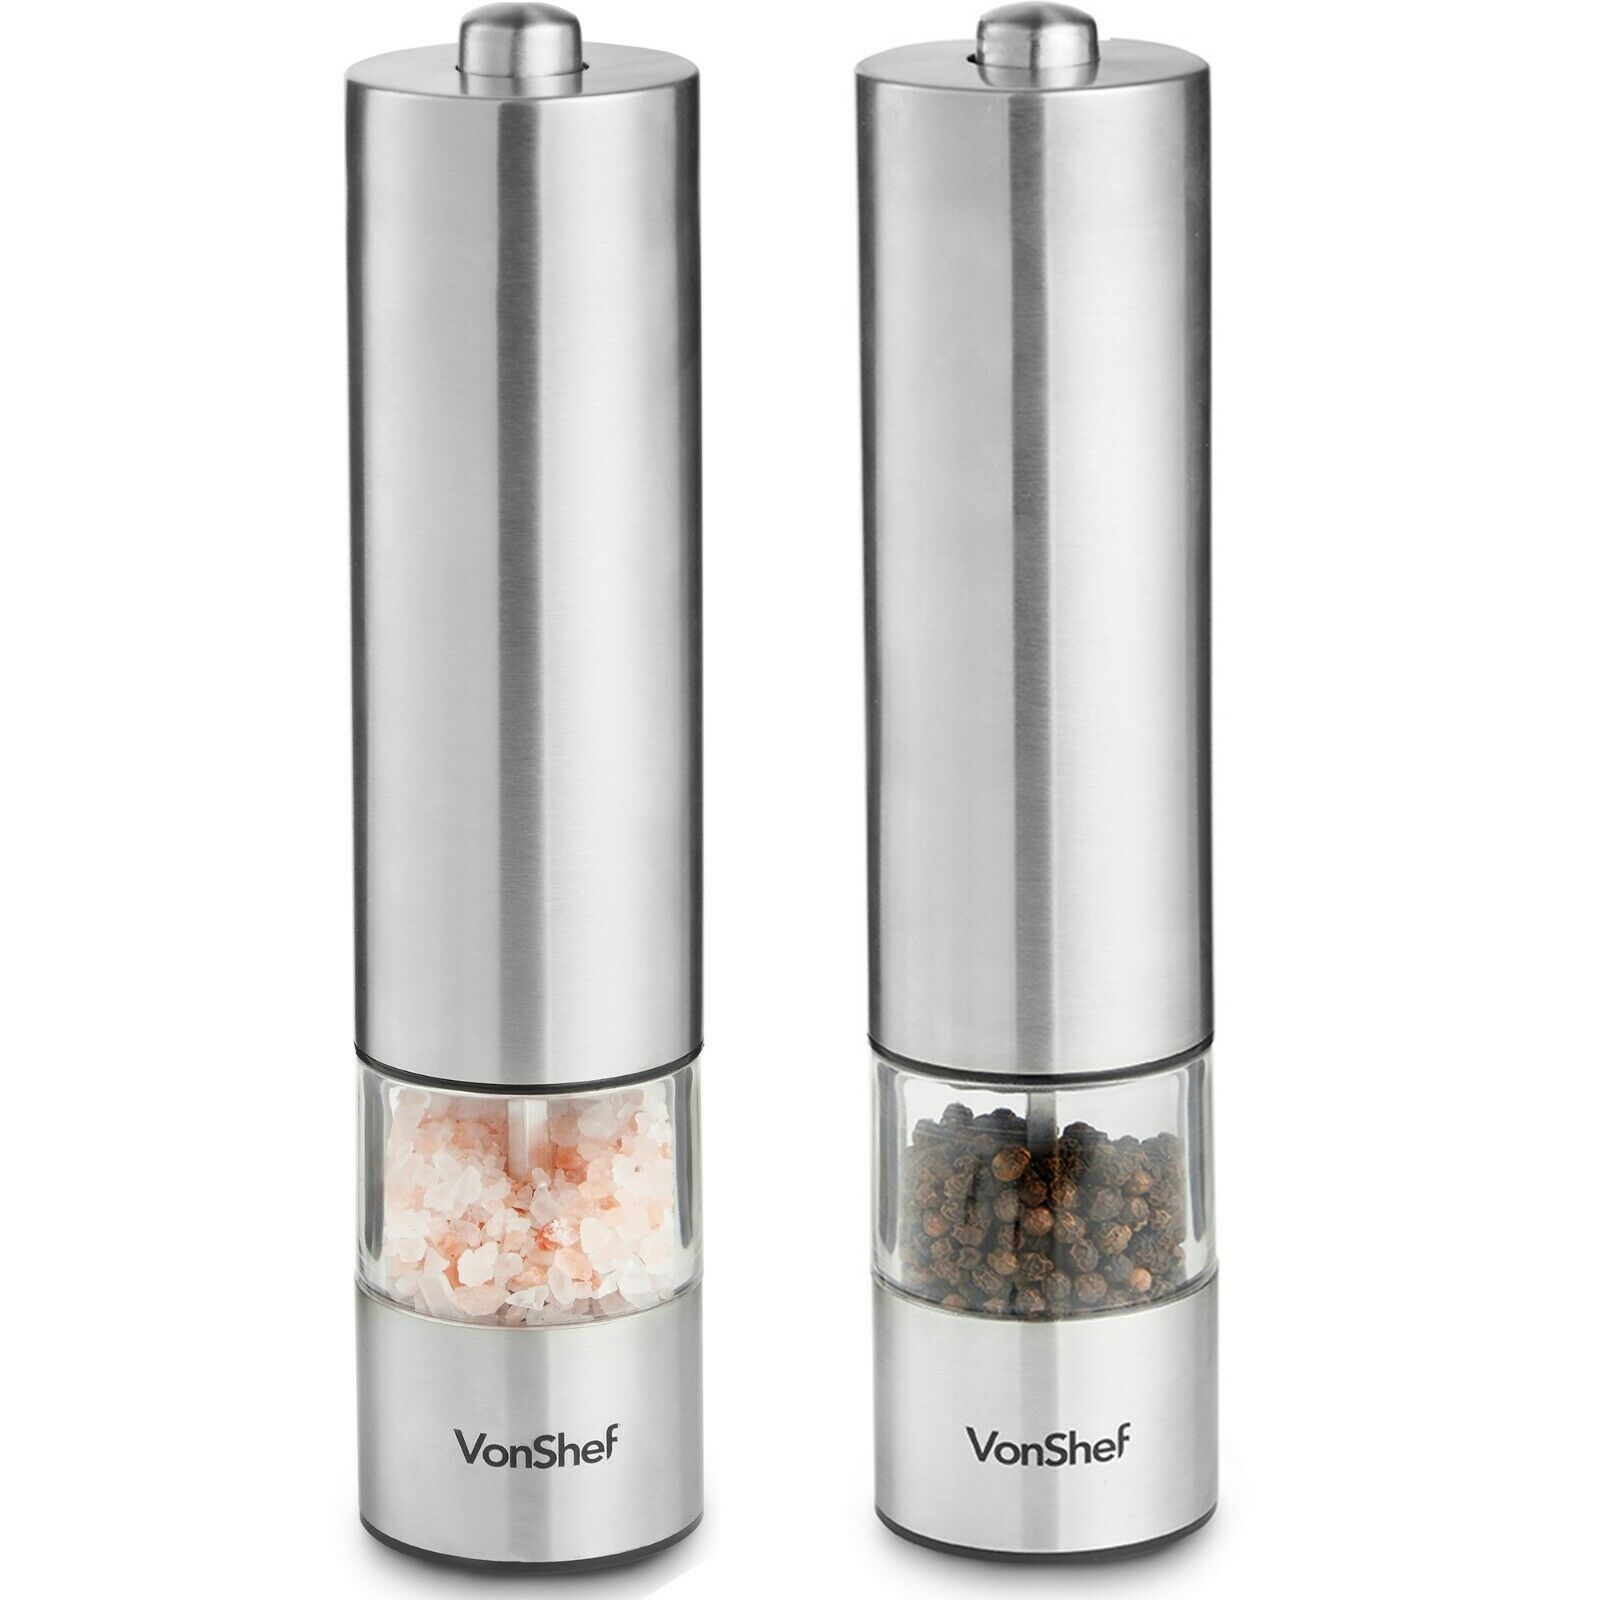 2pc Electric Salt & Pepper Mills £9.99 Delivered on ebay